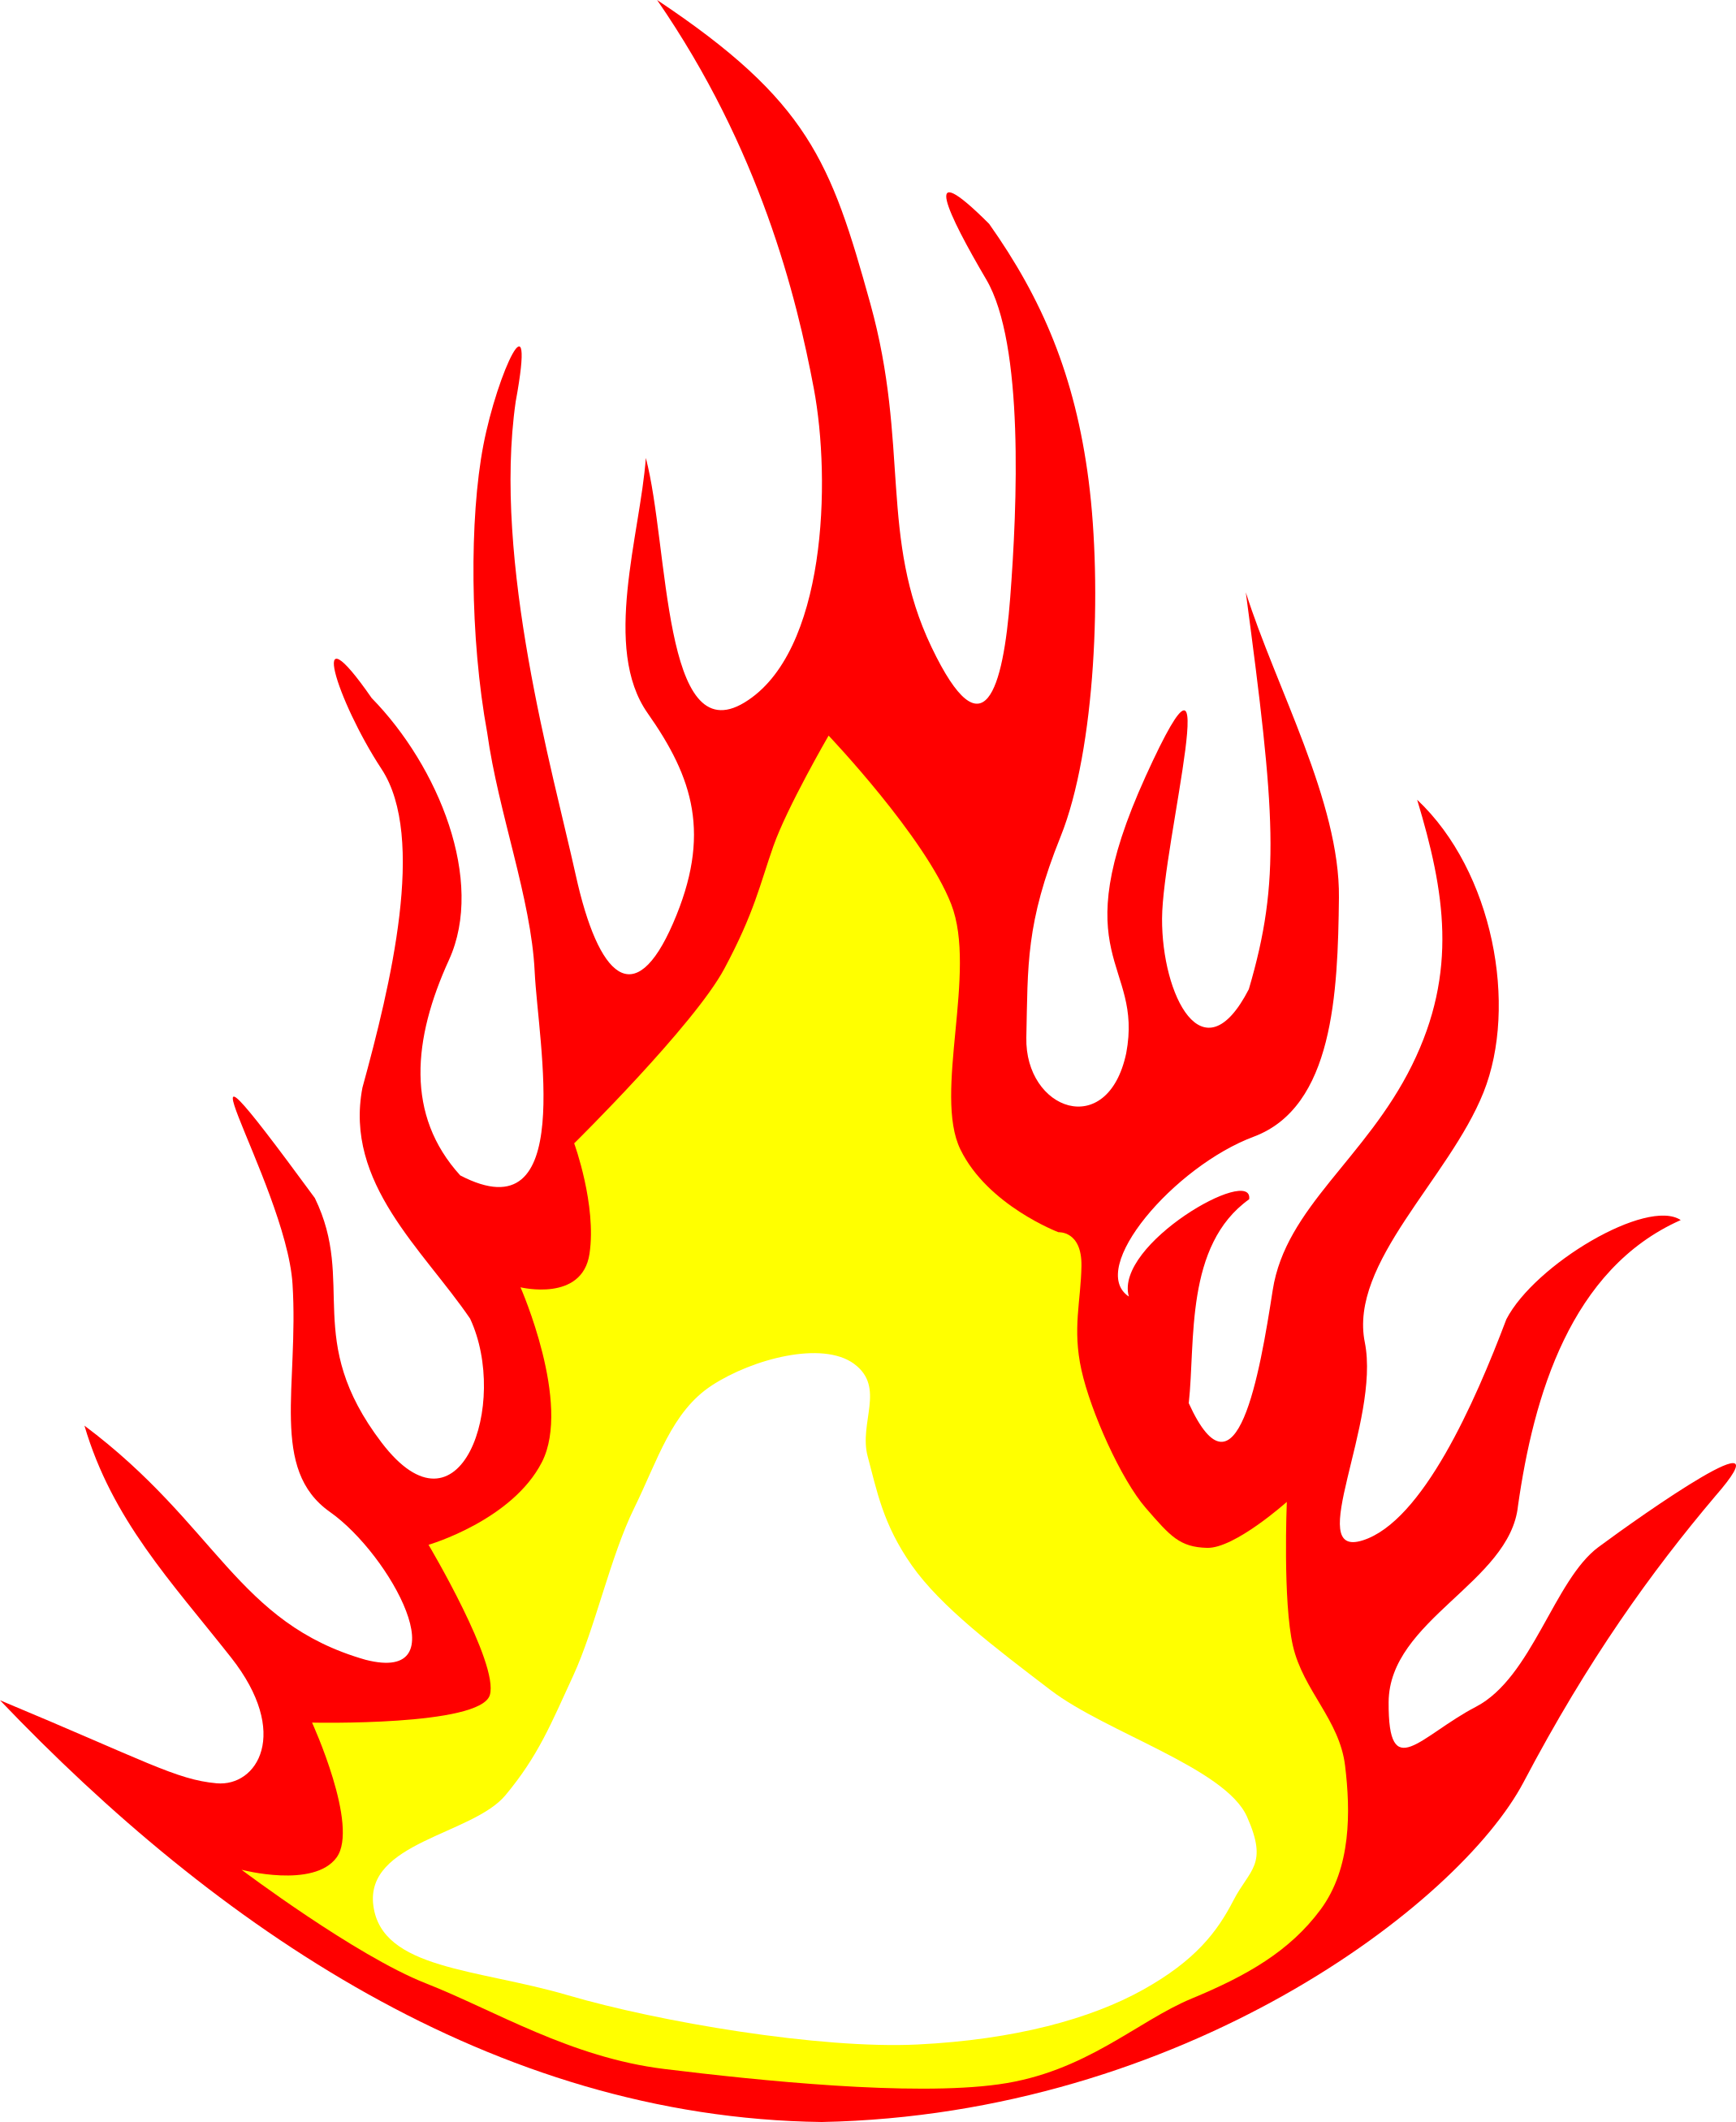 Yellow flames clipart png png transparent stock 5 Fire Flame Clipart (PNG Transparent) | OnlyGFX.com png transparent stock